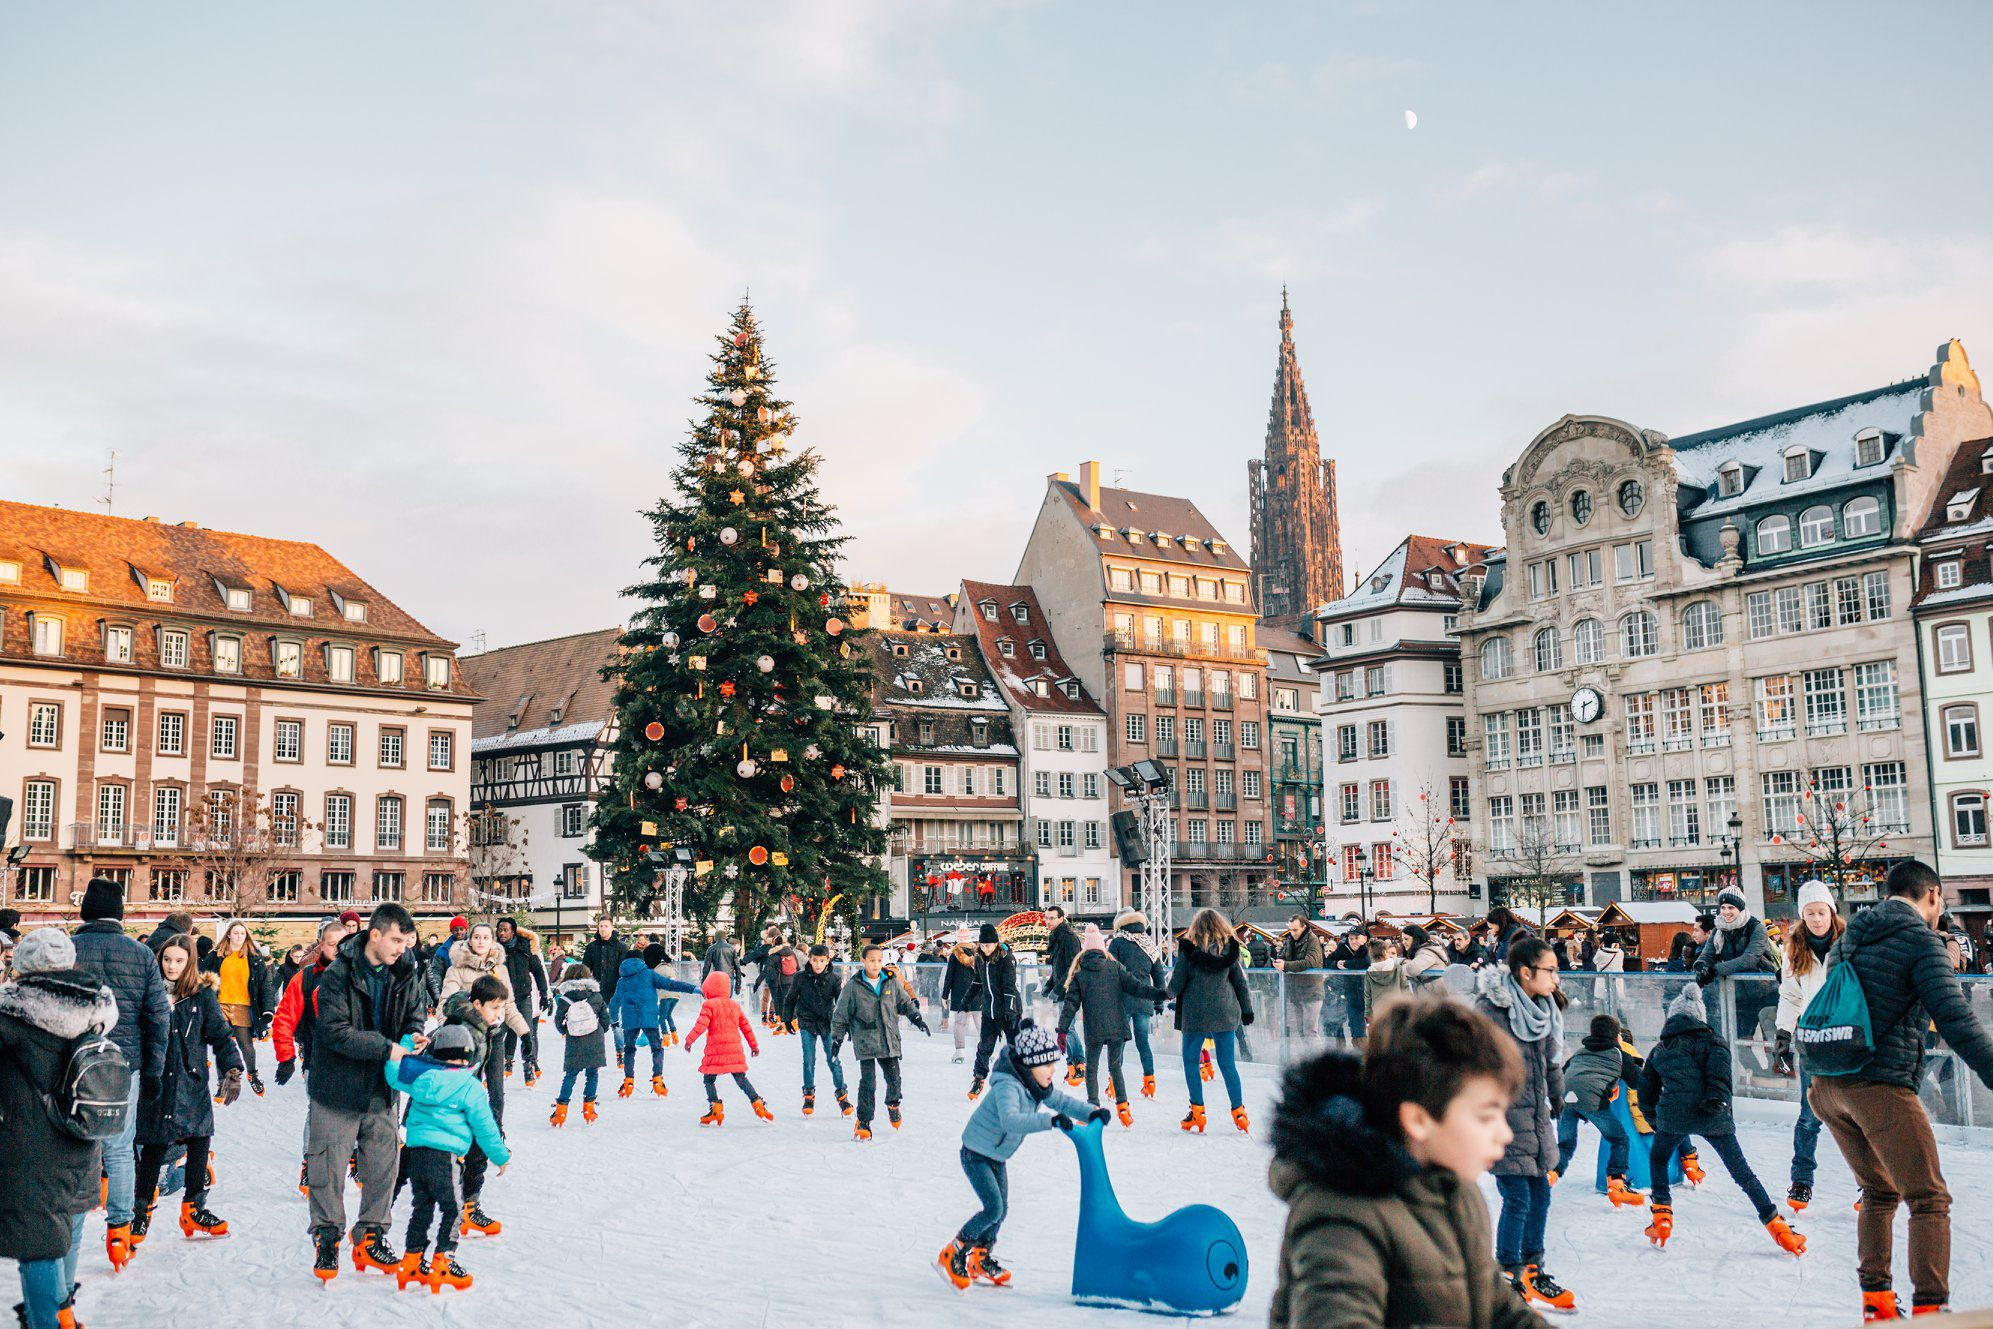 Strasbourg Christmas Market 2019 Dates, hotels, things